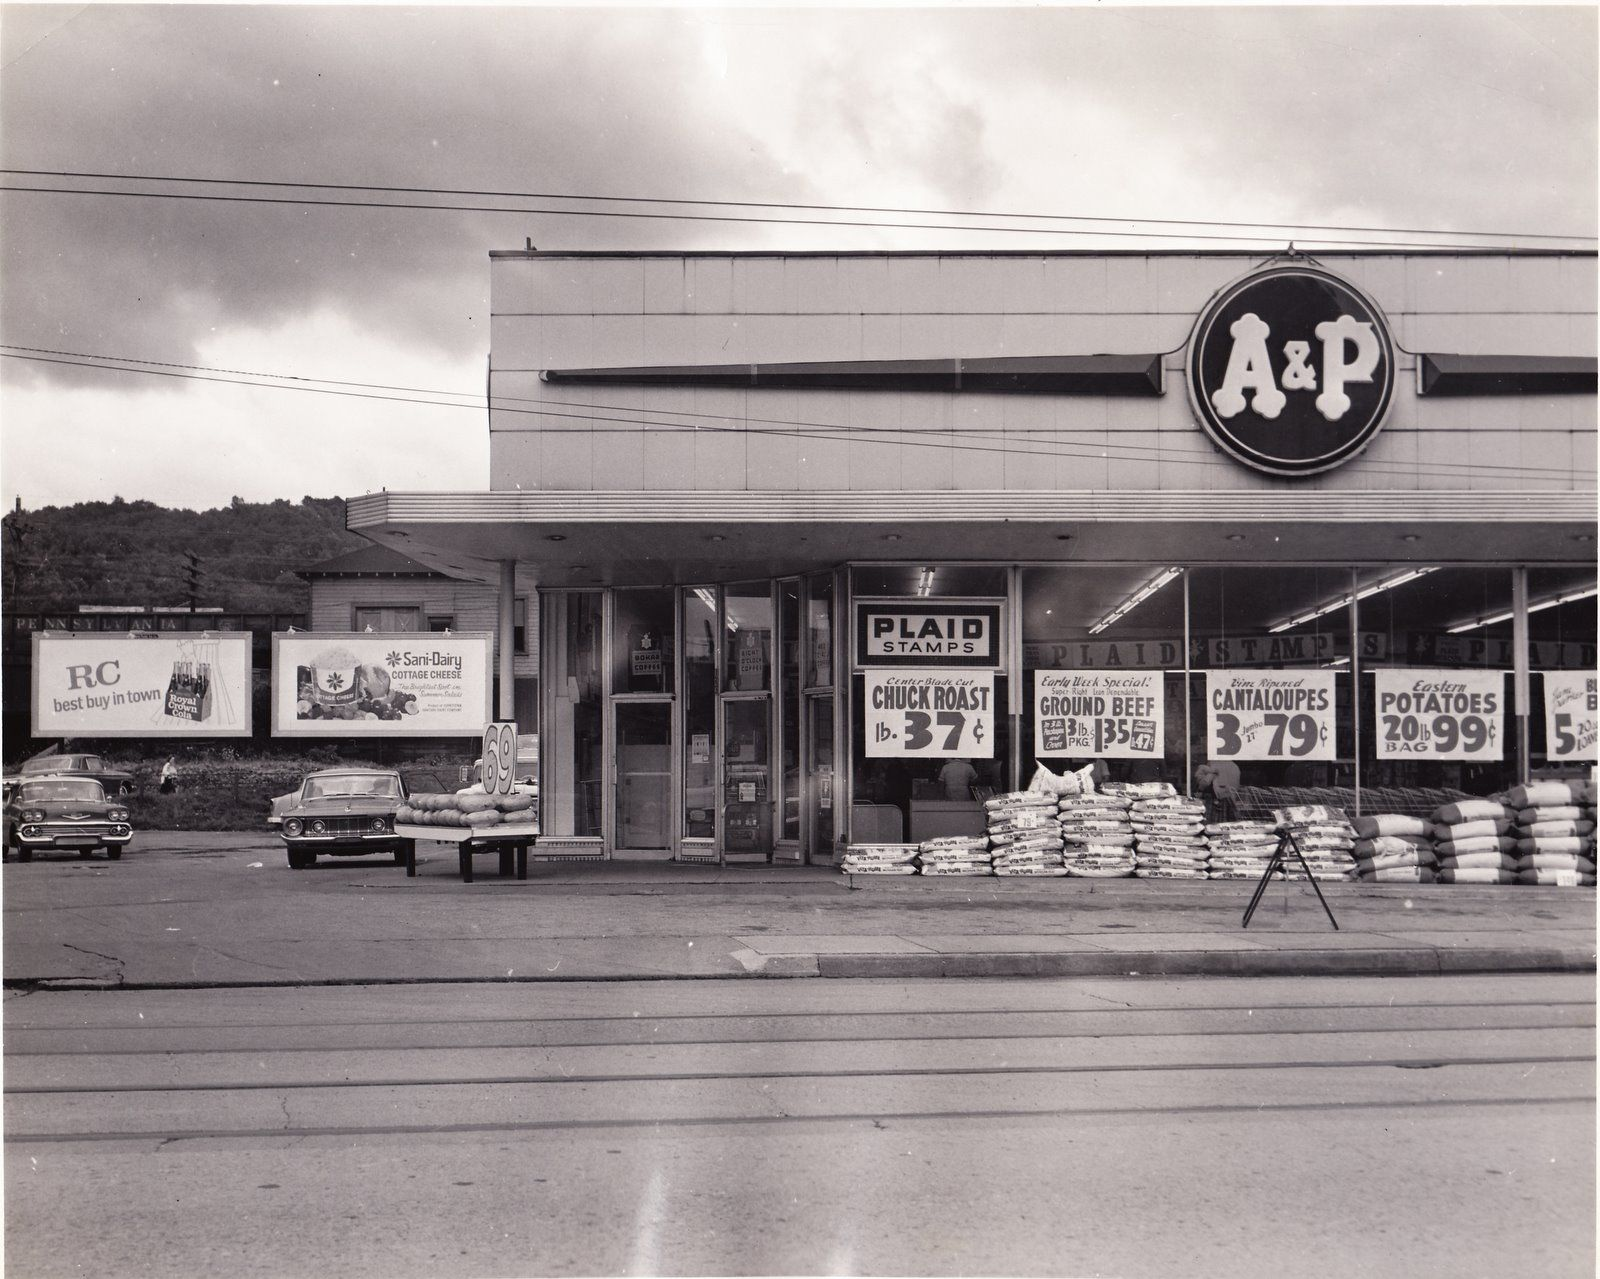 A p morrellville with images johnstown the good